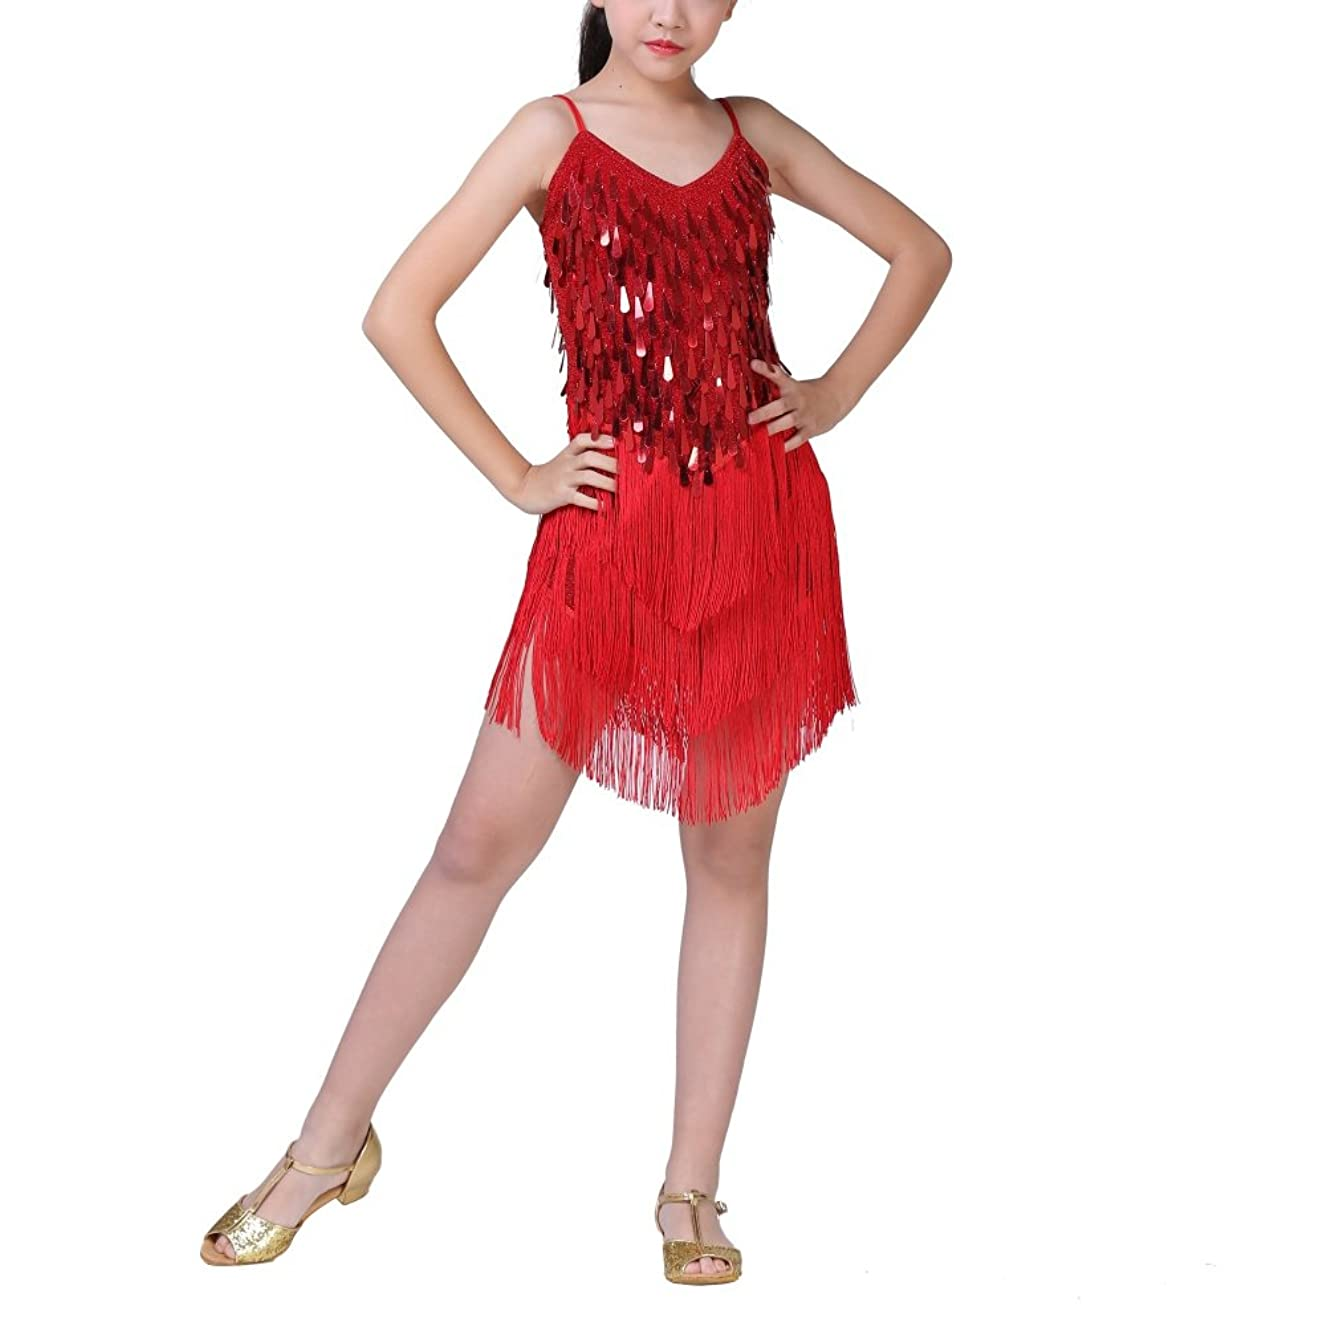 Loveble Latin Dance Dress Rumba Salsa Samba Chacha Tango Kids Girls Tassel Sequin Skirt Latin Costume